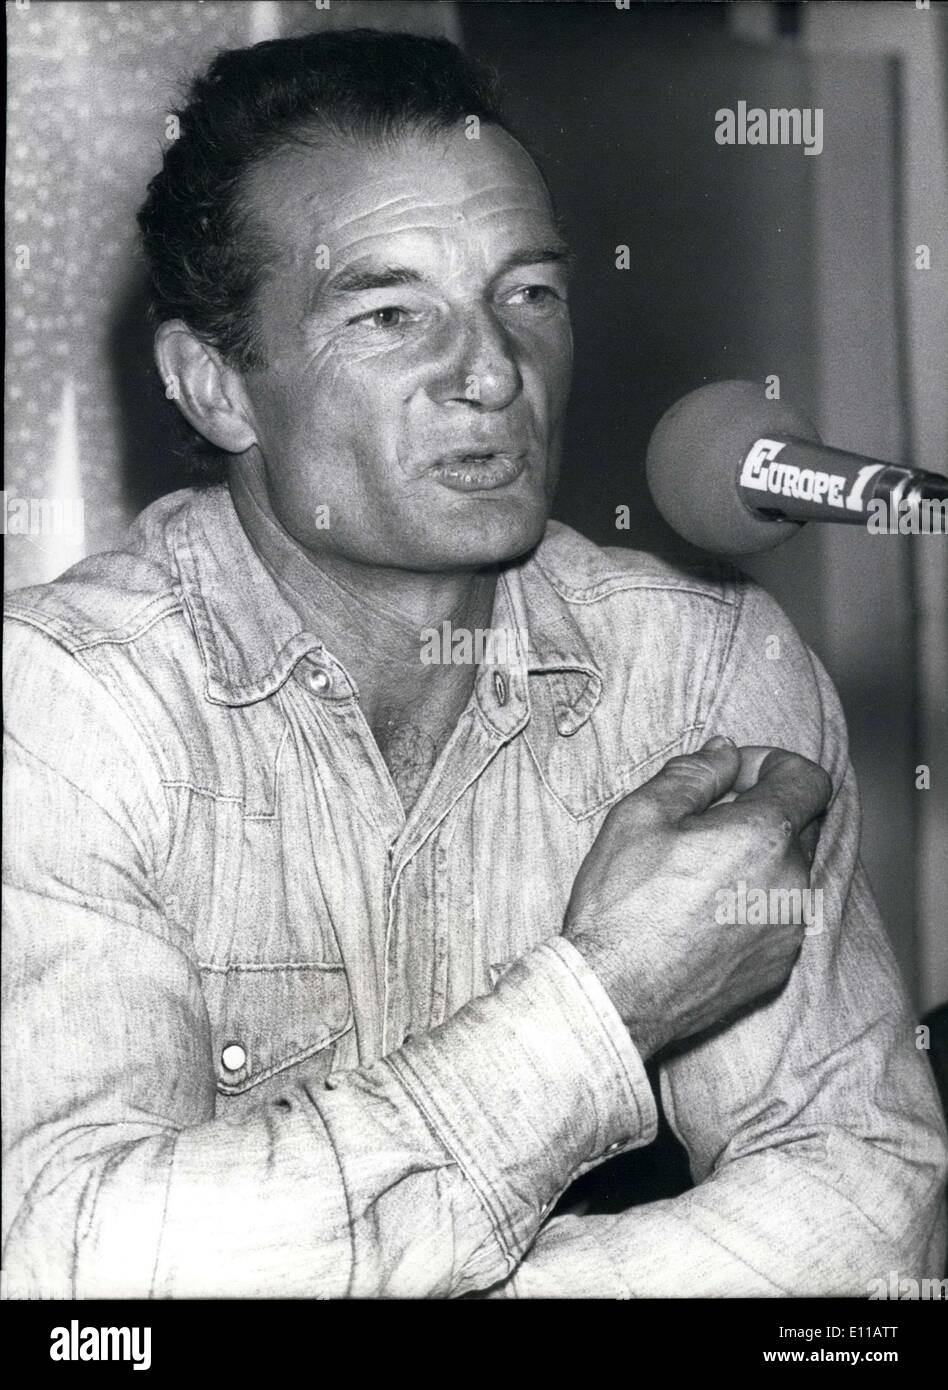 Jul. 01, 1976 - The French navigator, Eric Tabarly won the one-man race of crossing the Atlantic Ocean. Here he is recounting his journey to the press in Paris. - Stock Image